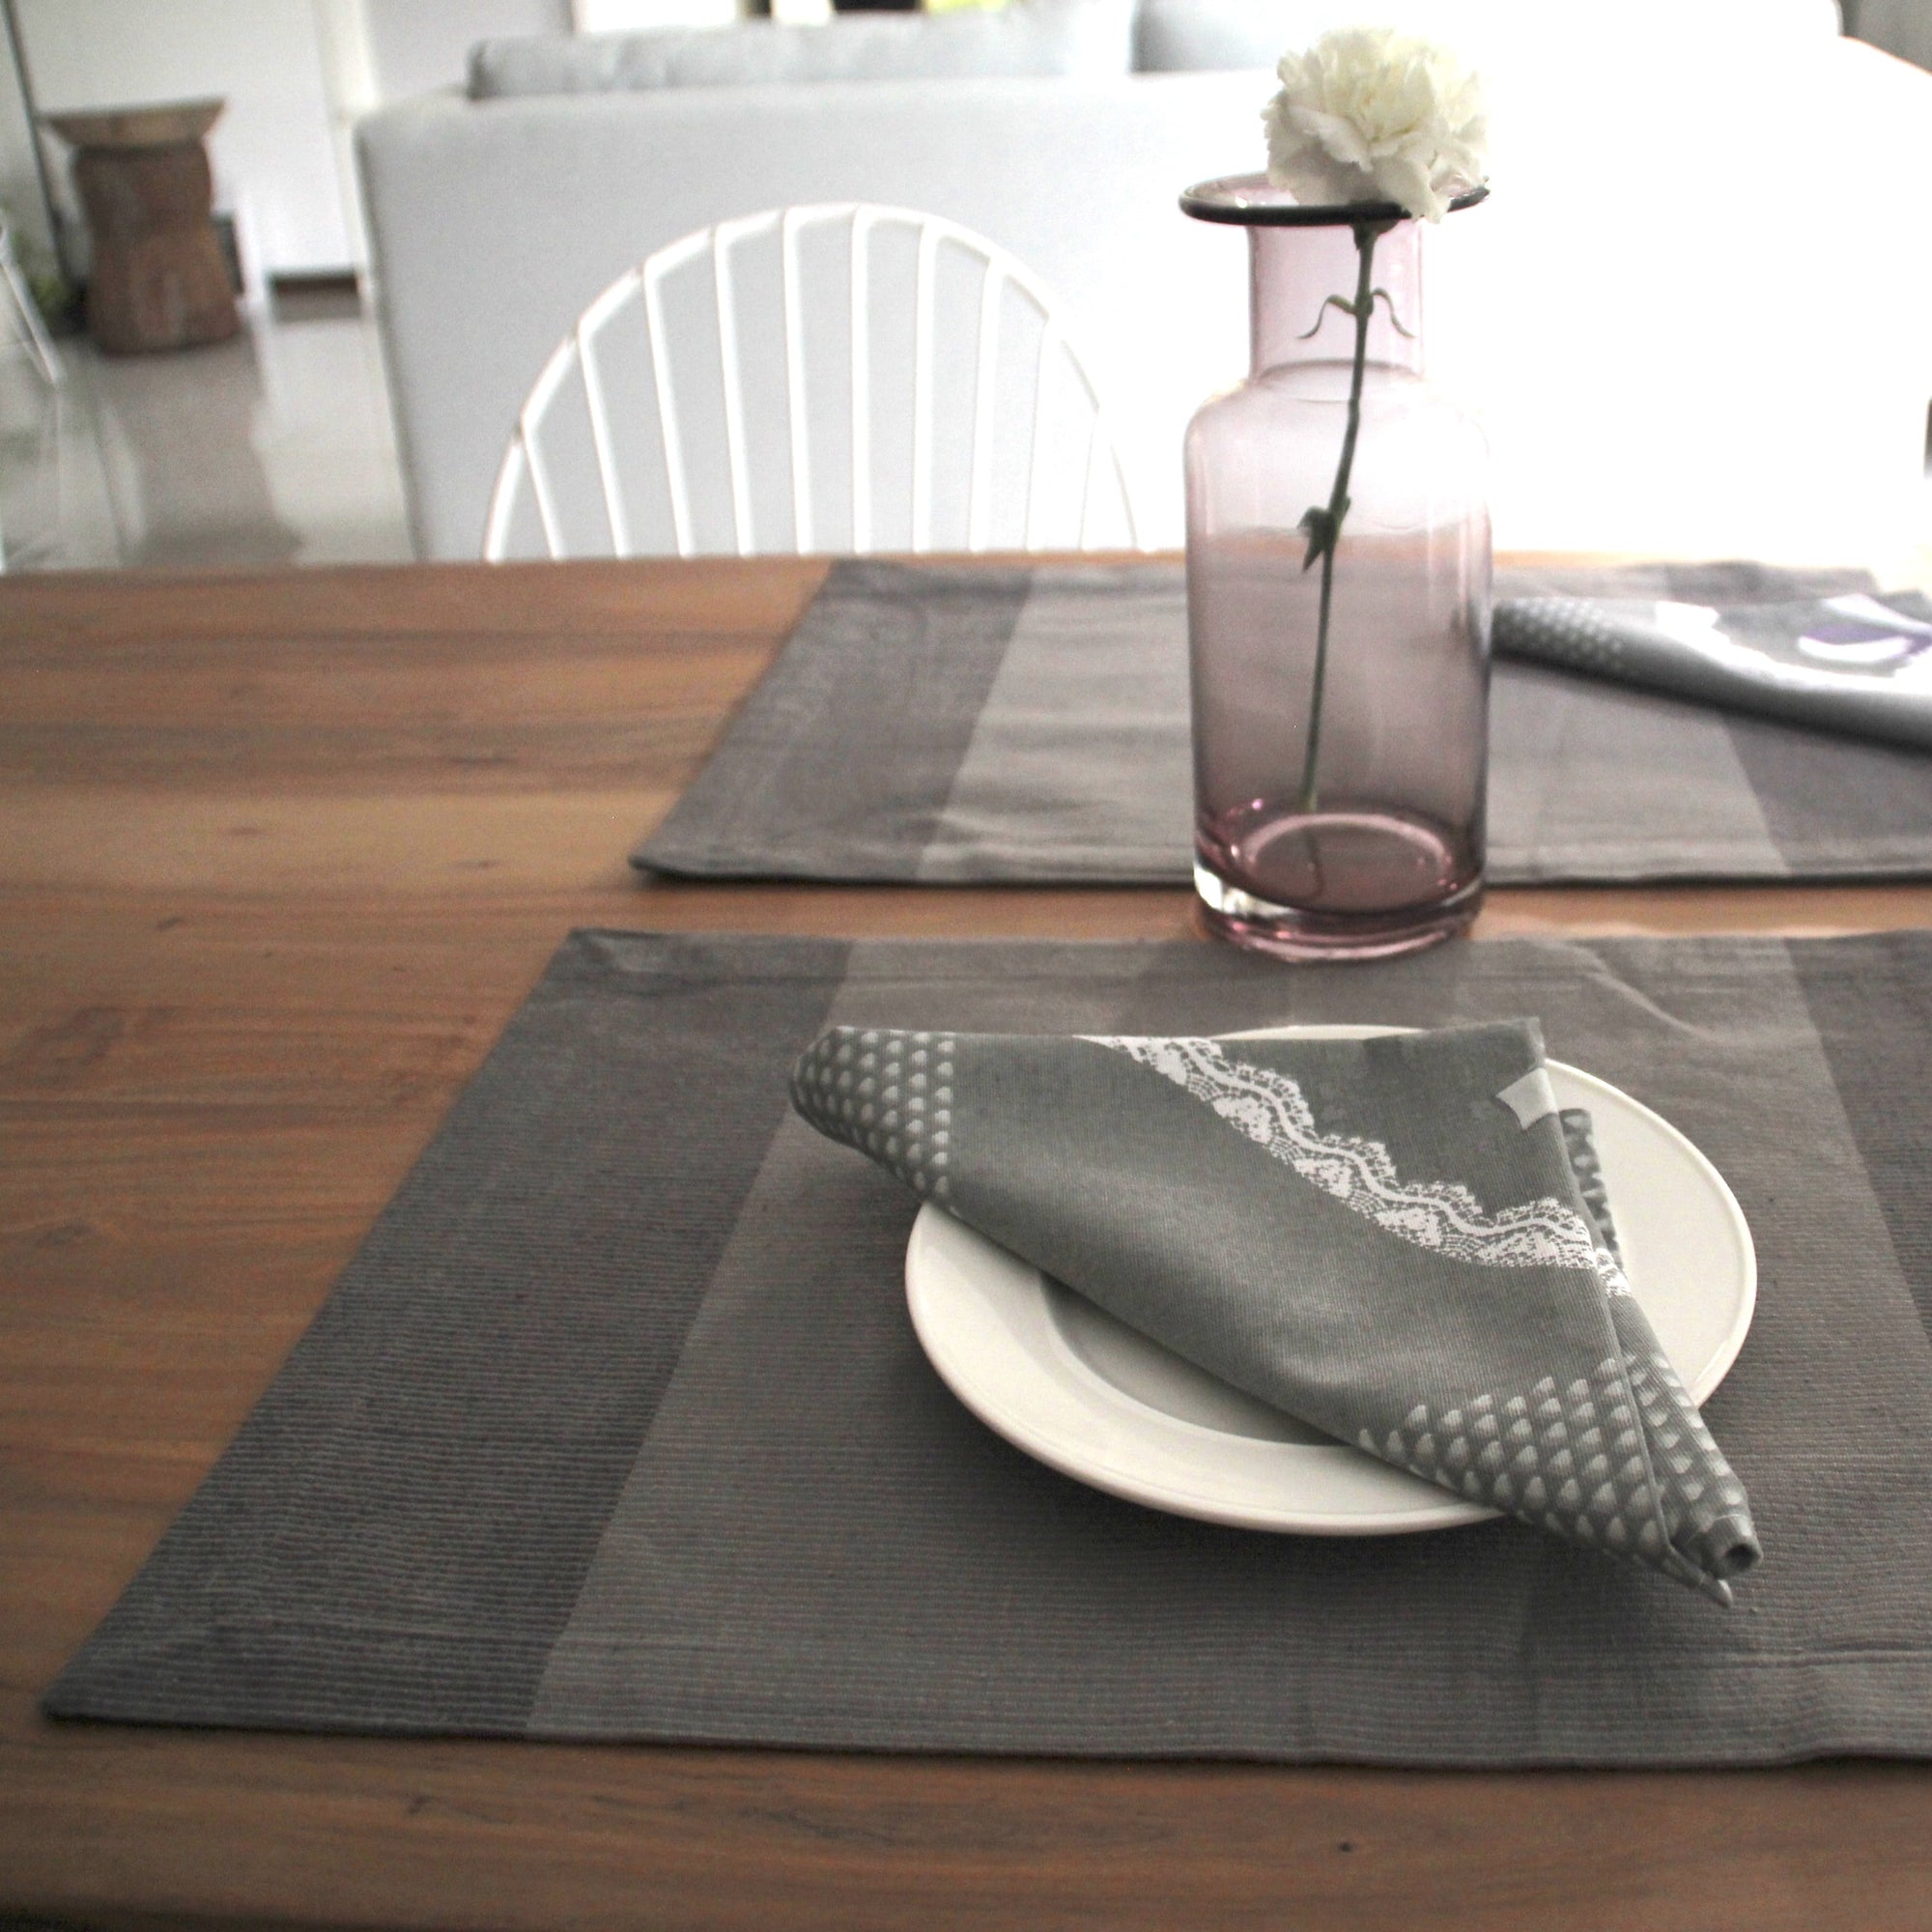 Tessa Grey Placemats with Napkins - Set of 2